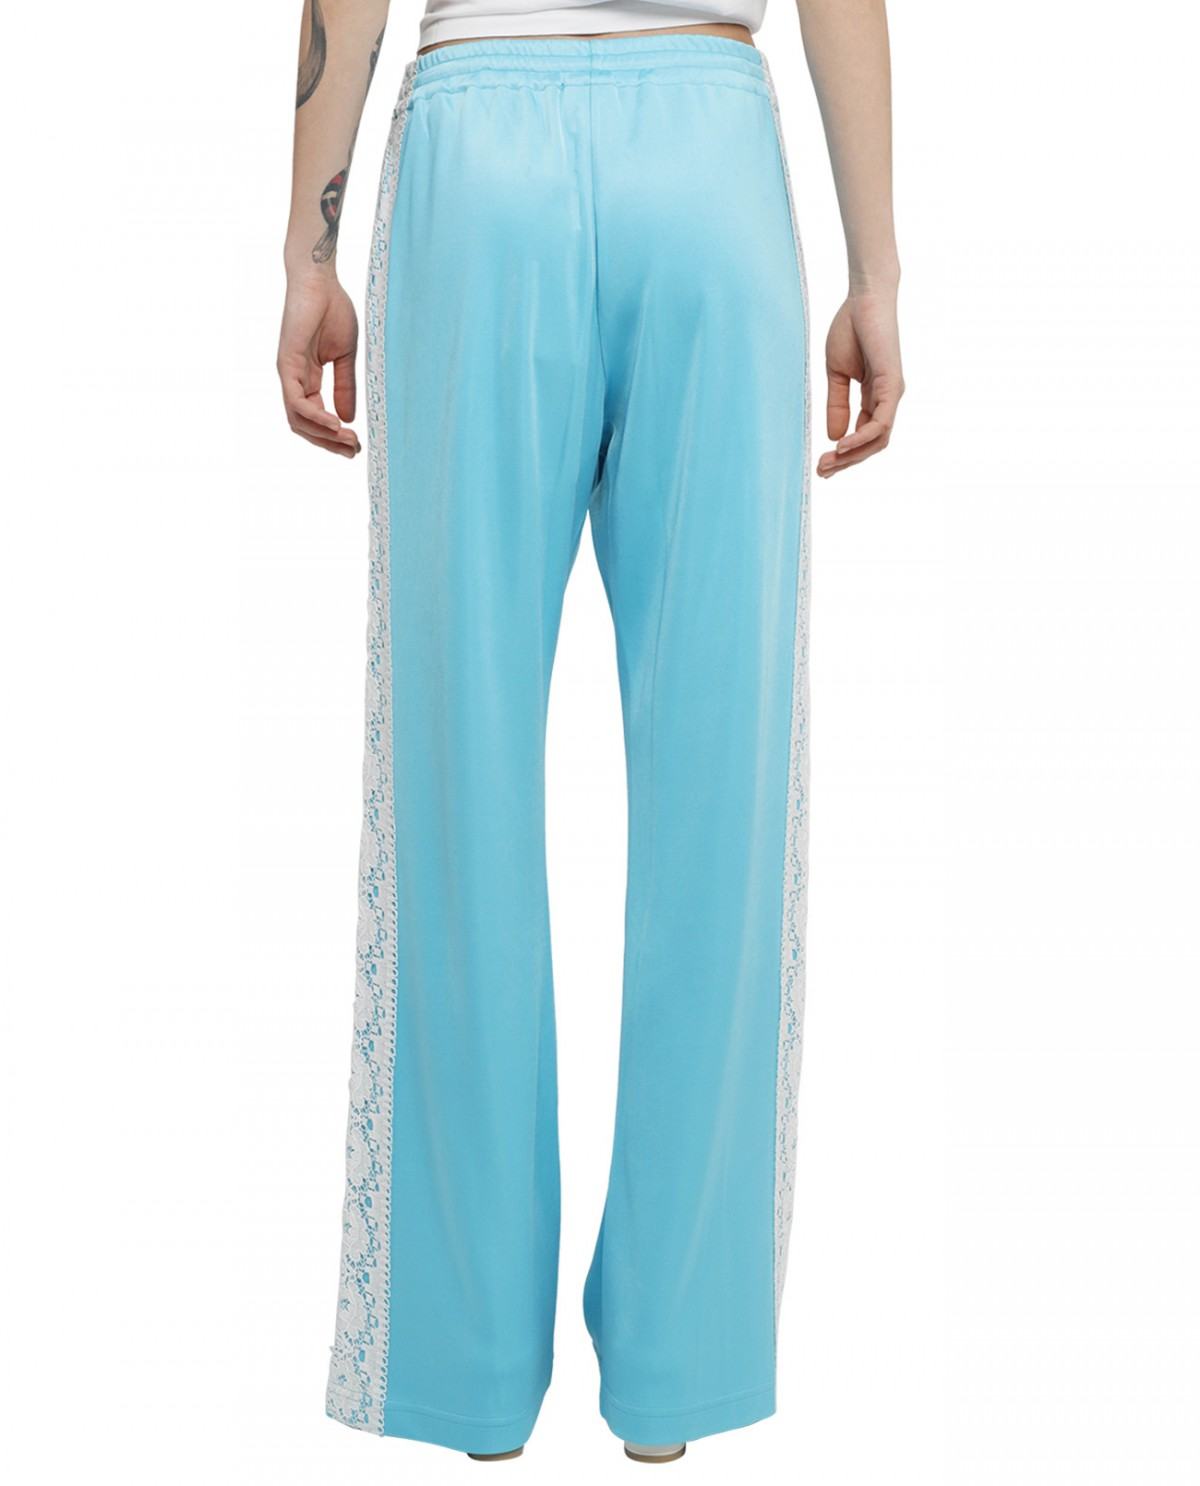 Dolce & Gabbana denim blue trousers